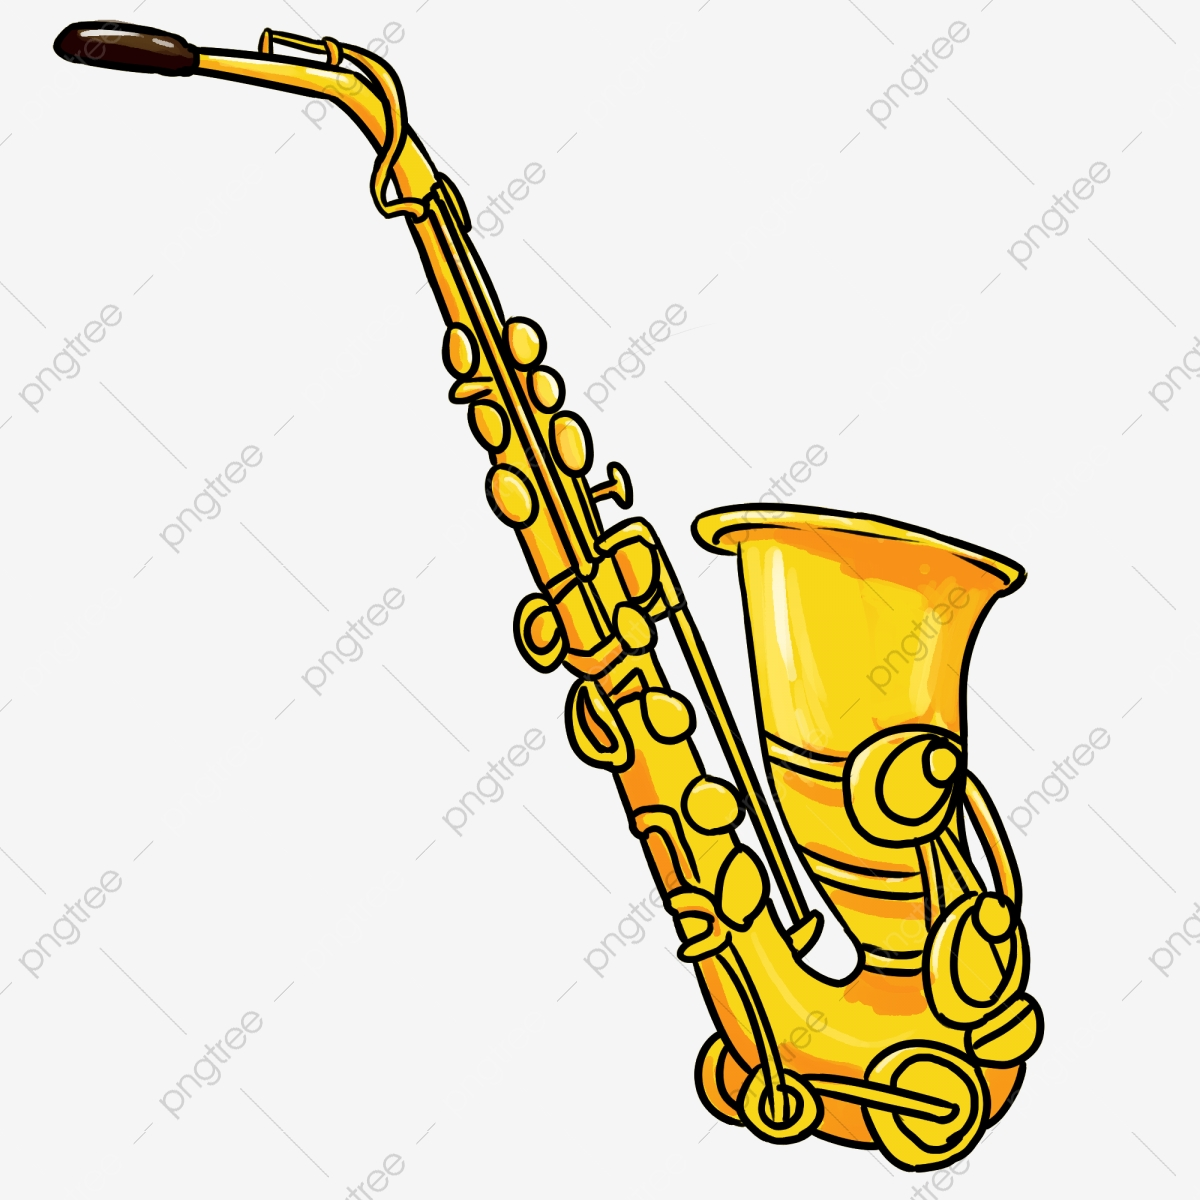 Saxophone, Saxophone Clipart, Western Musical Instruments.